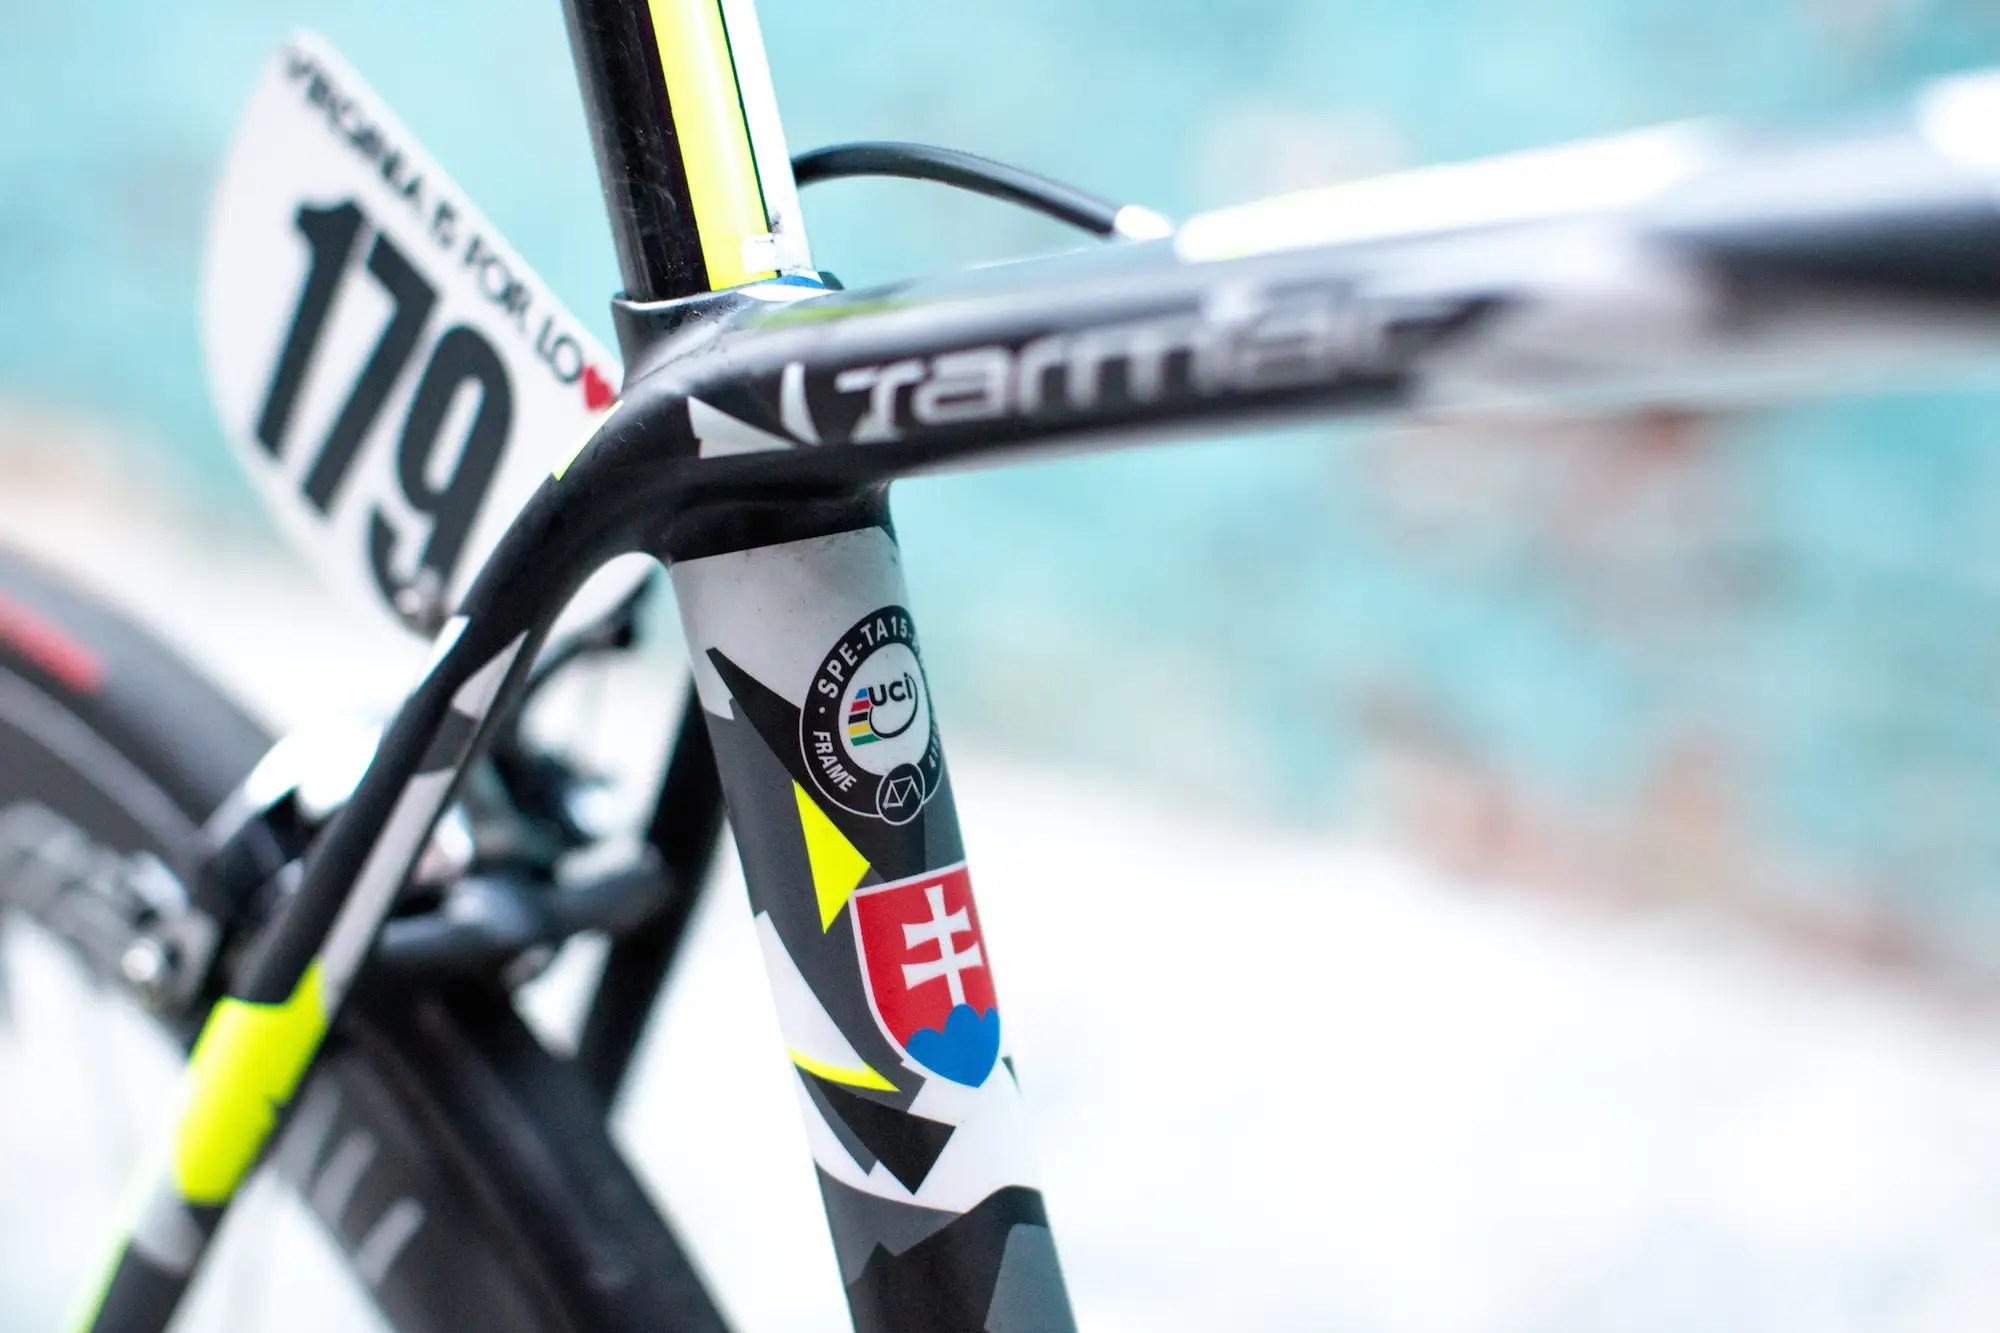 The coat of arms of Slovakia on the seat tube is a nice touch.